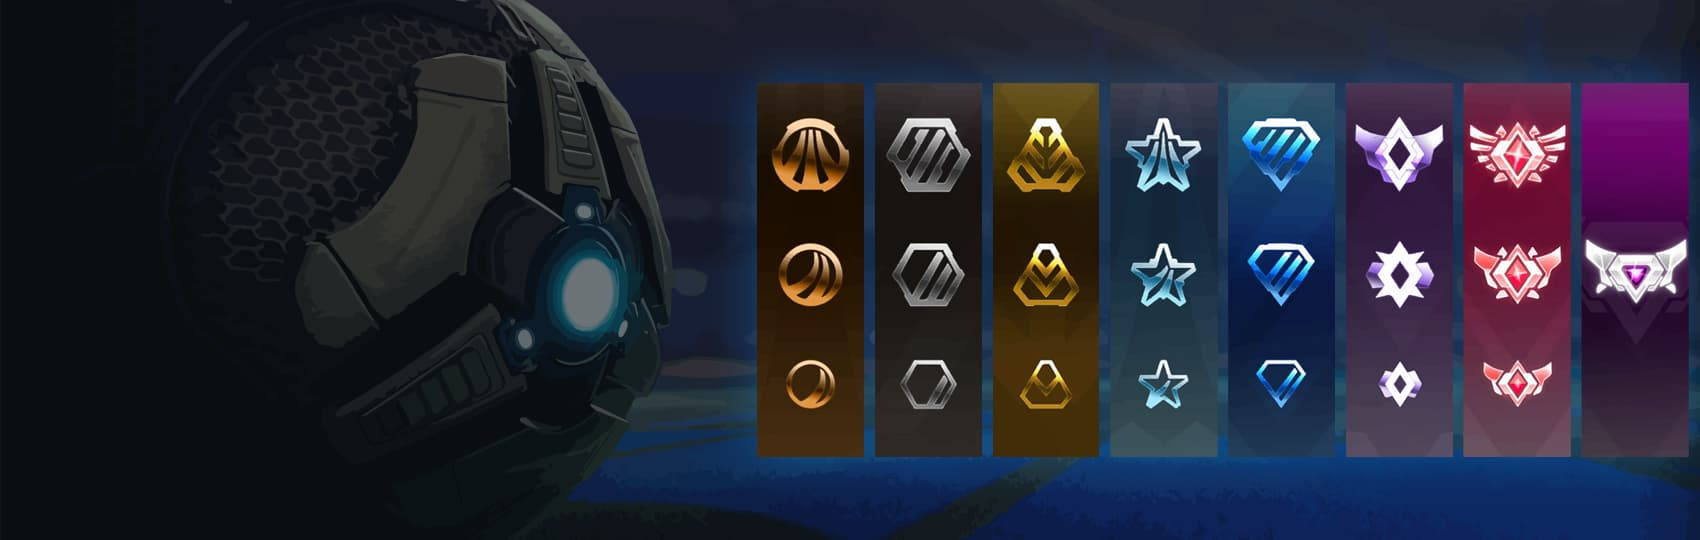 How to rise up your rank in the Rocket League